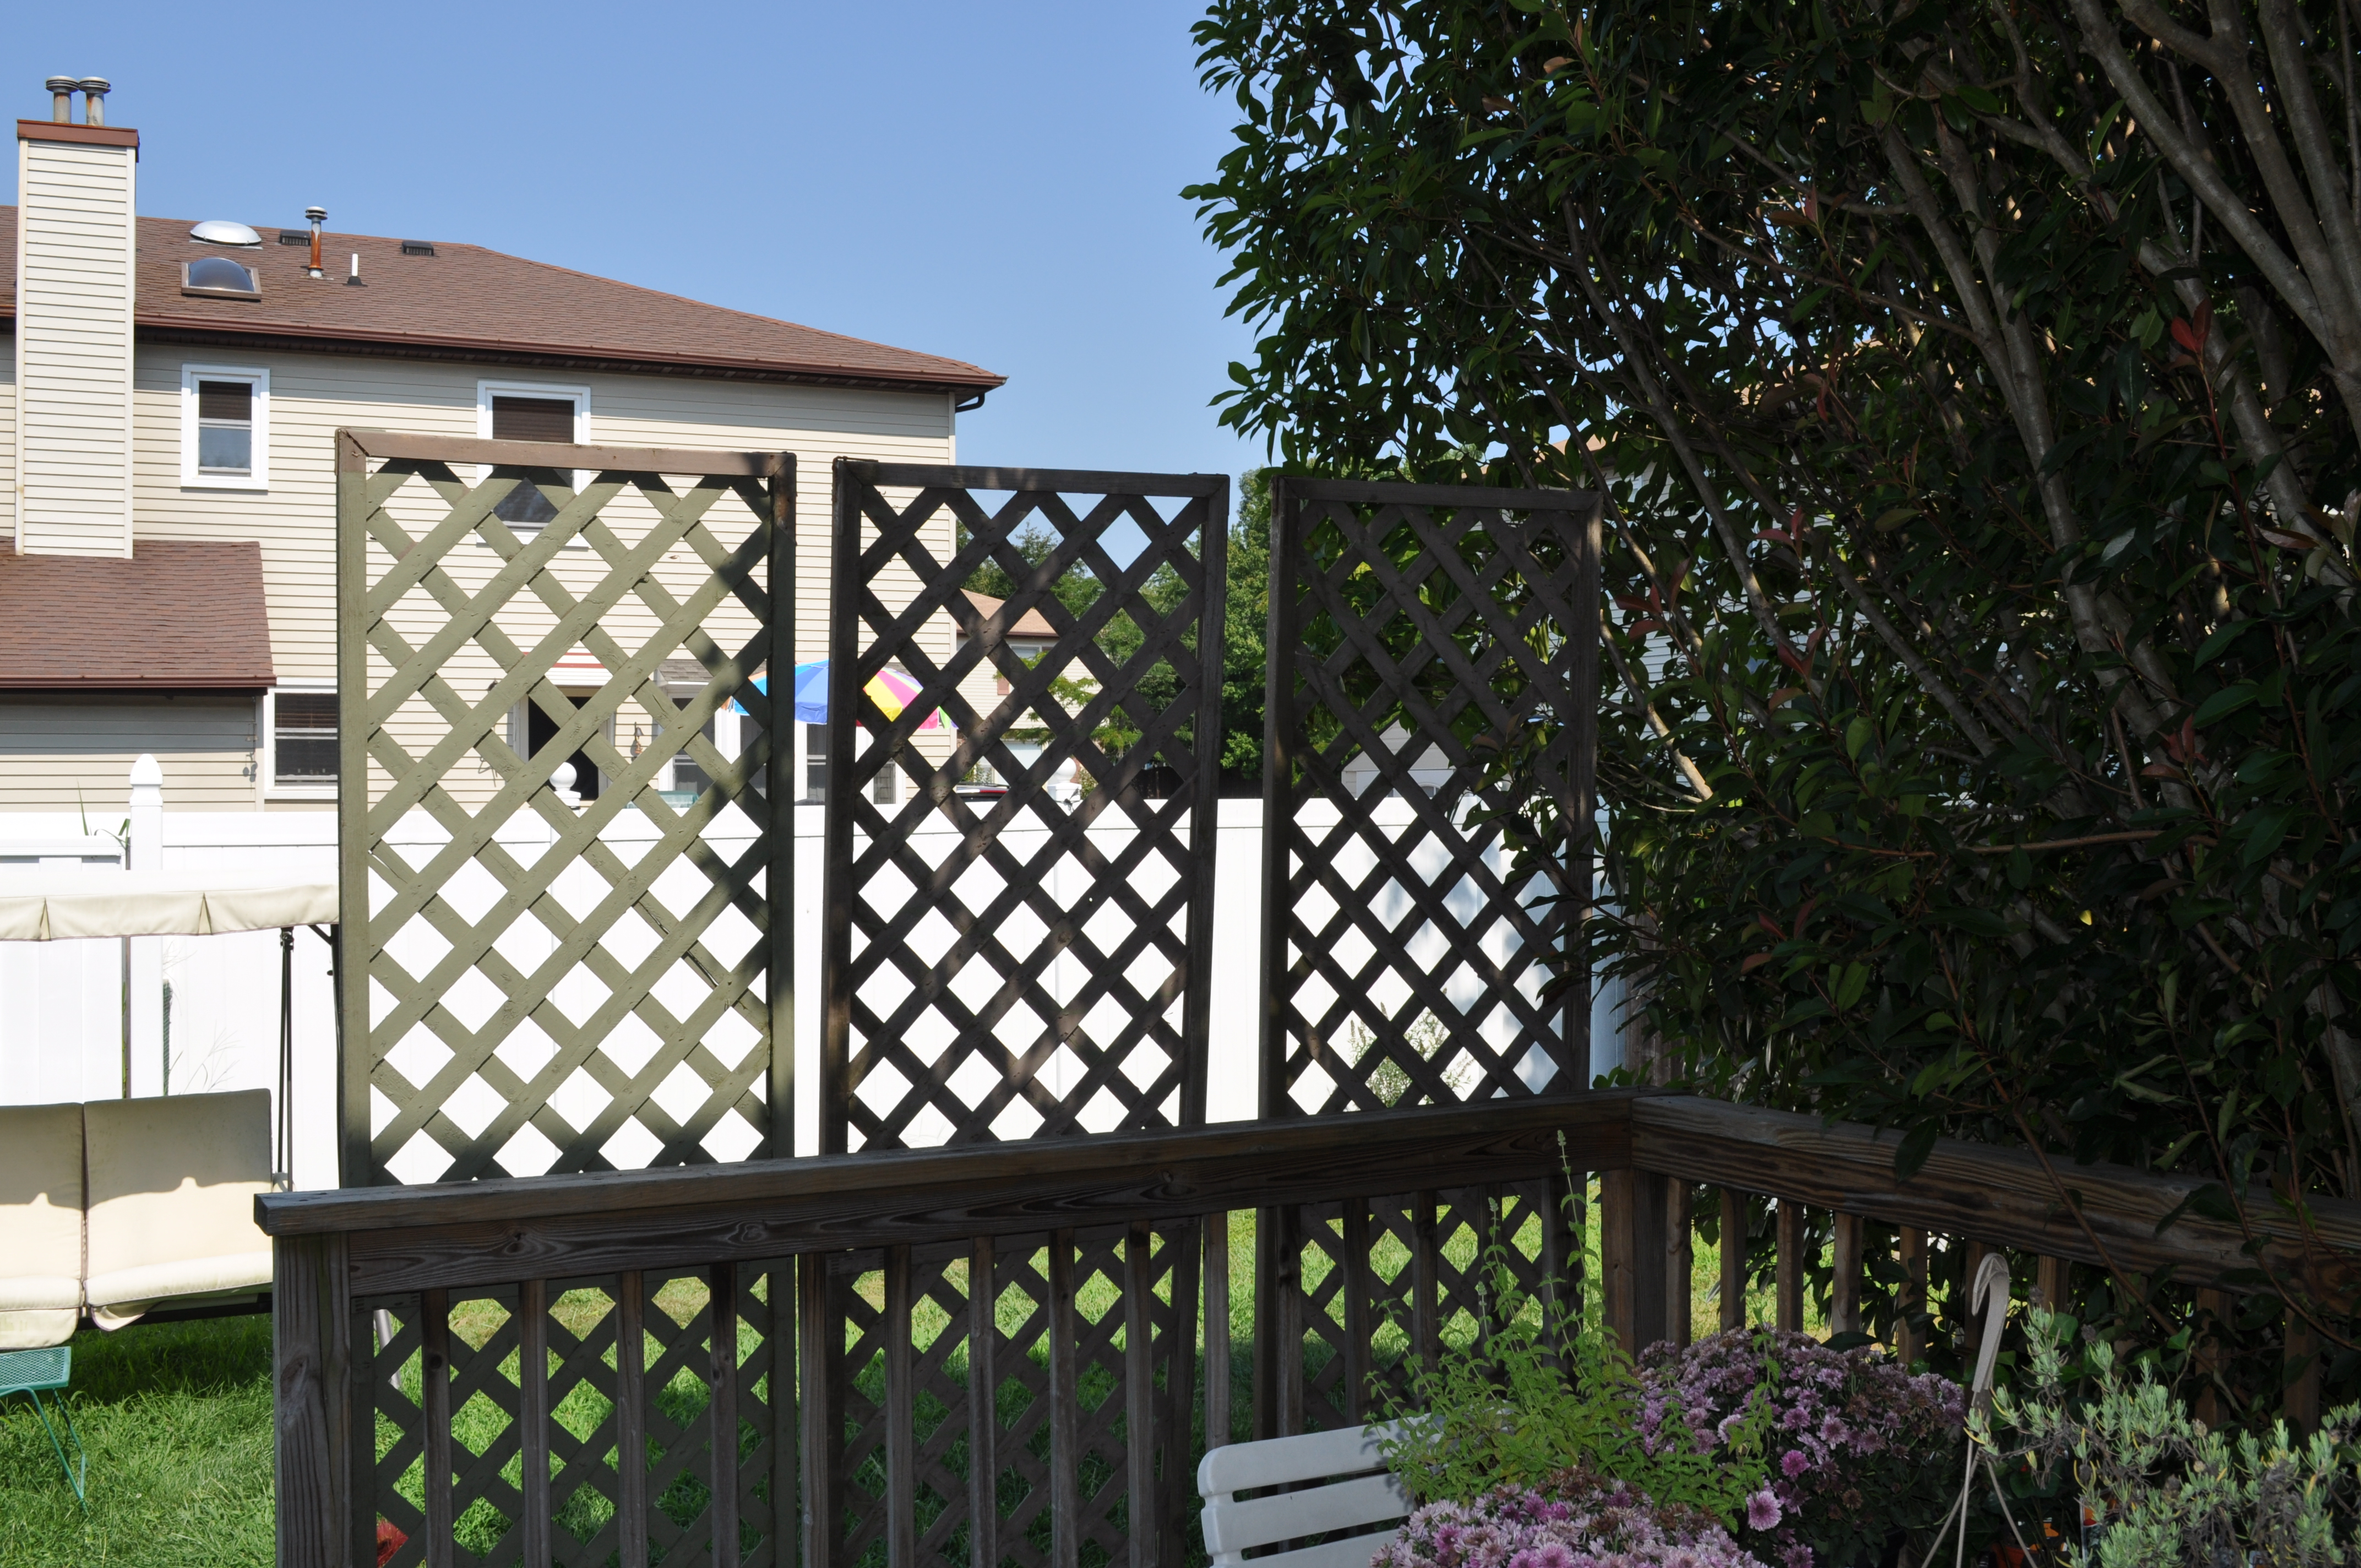 Wood Work Lattice Privacy Screen For Deck PDF Plans